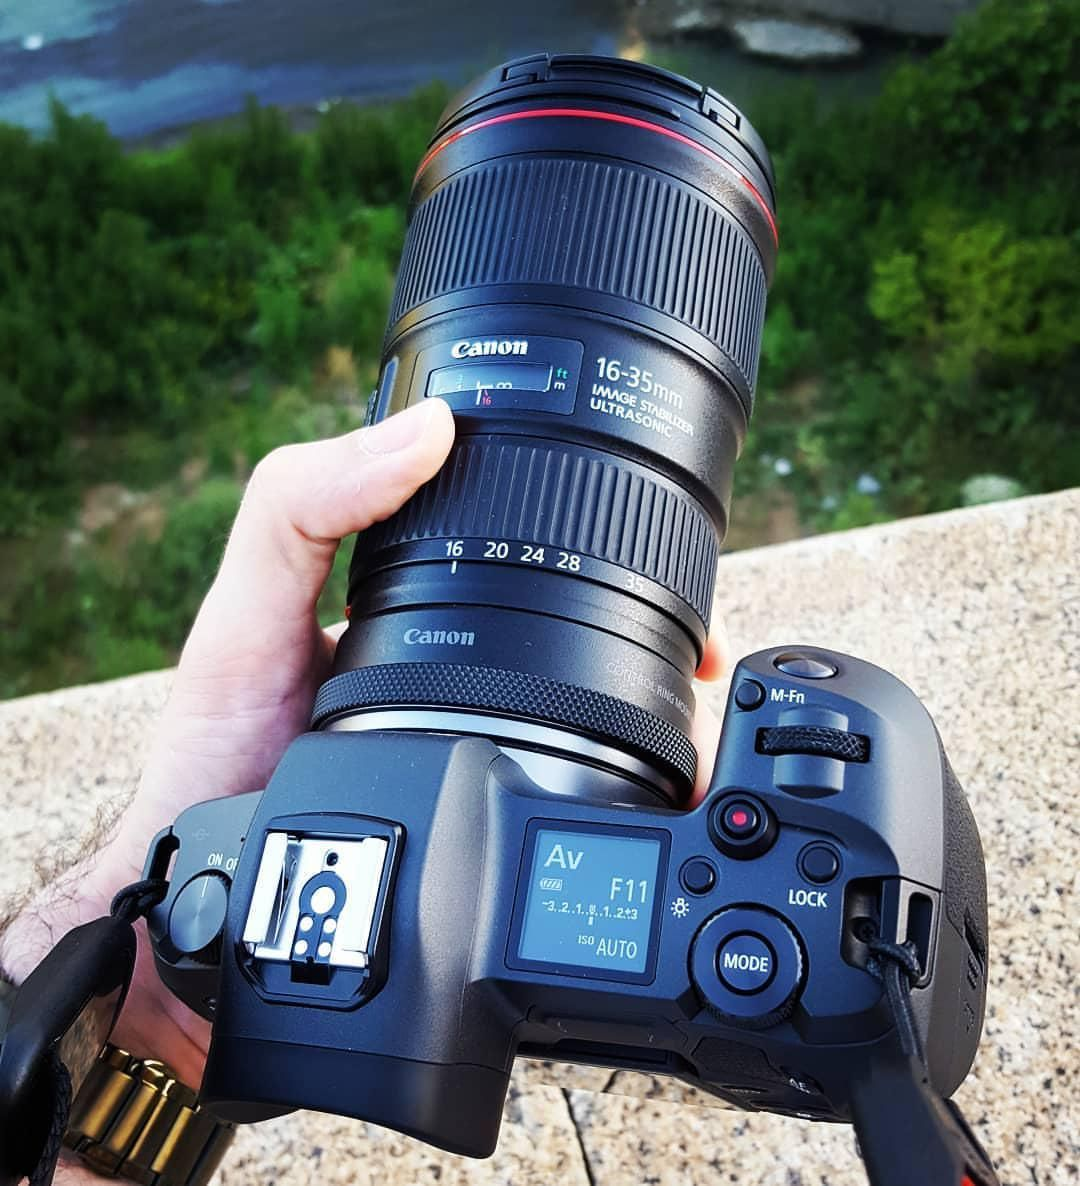 Canon Eos R Ef Rf Adapter Canon Ef 16 35mm F 4 Cammino Mirrorlesscameras Mirrorlesscamera Mirrorless Camera Photography Best Camera Classic Camera